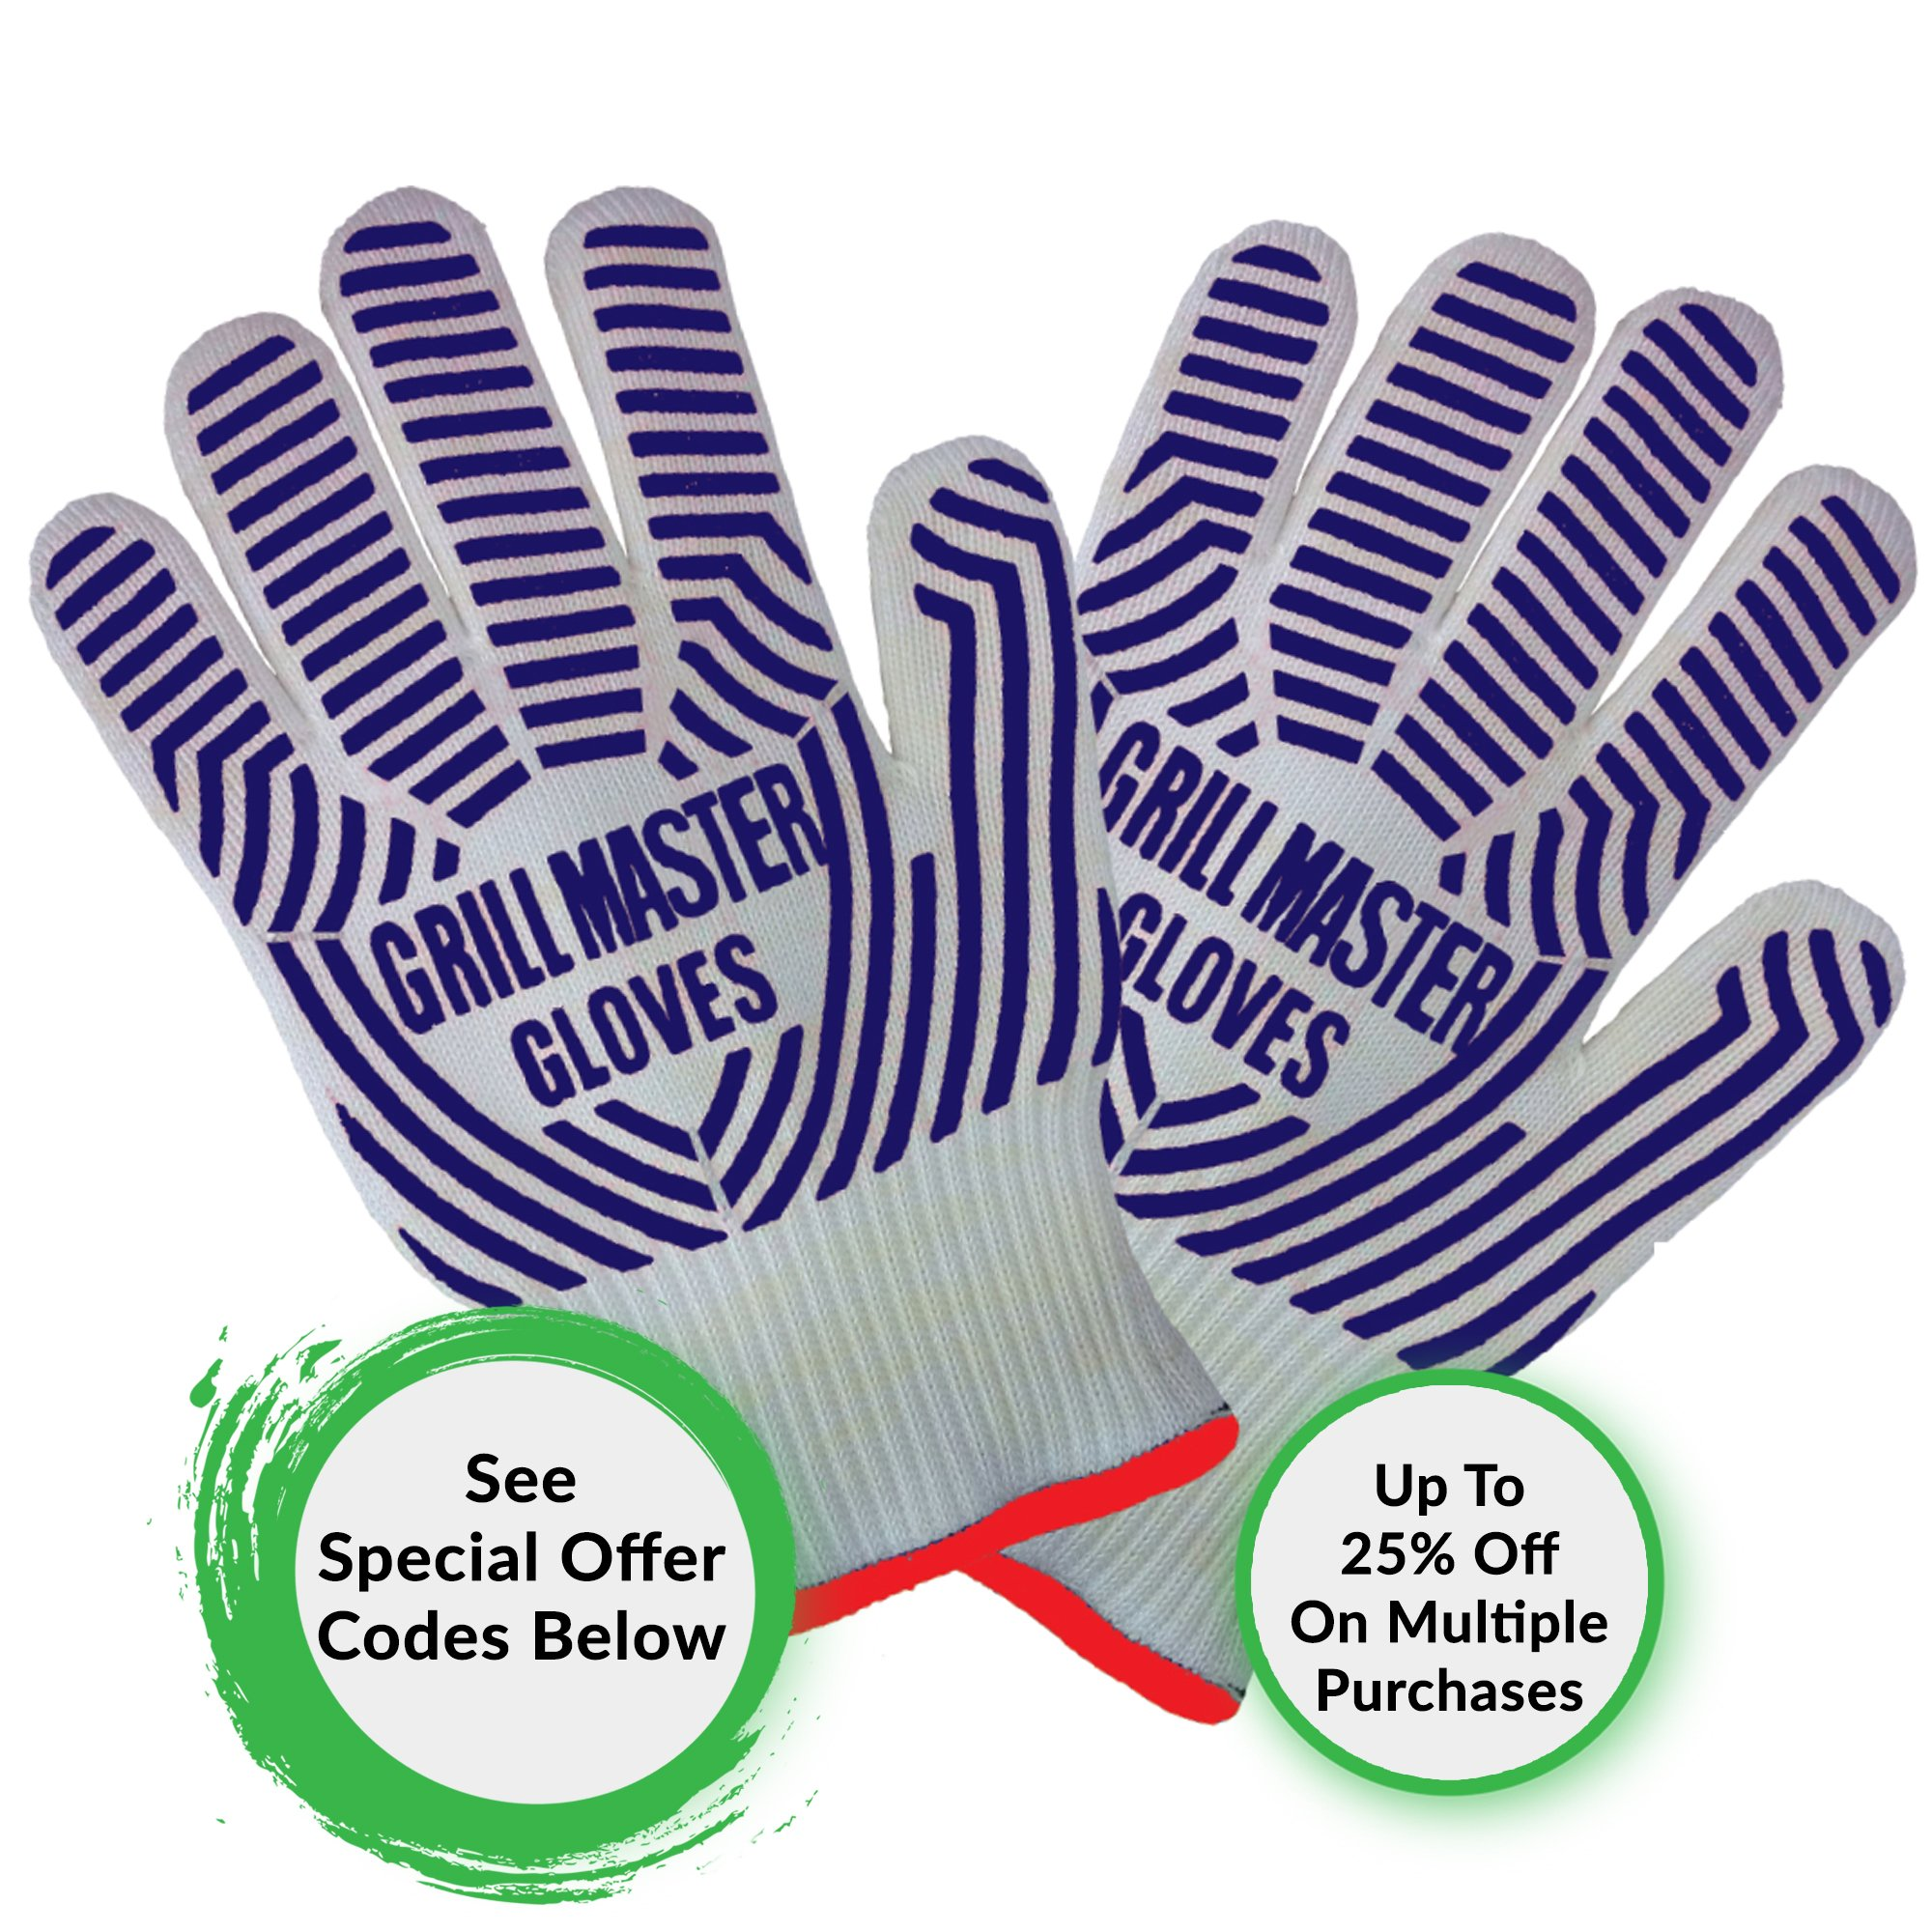 Grill Gloves Heat Resistant Extreme BBQ Gloves Oven Gloves Rated to 932f - Ideal Grilling Gloves by Grill Master (Black) by Grill Master Gloves (Image #7)